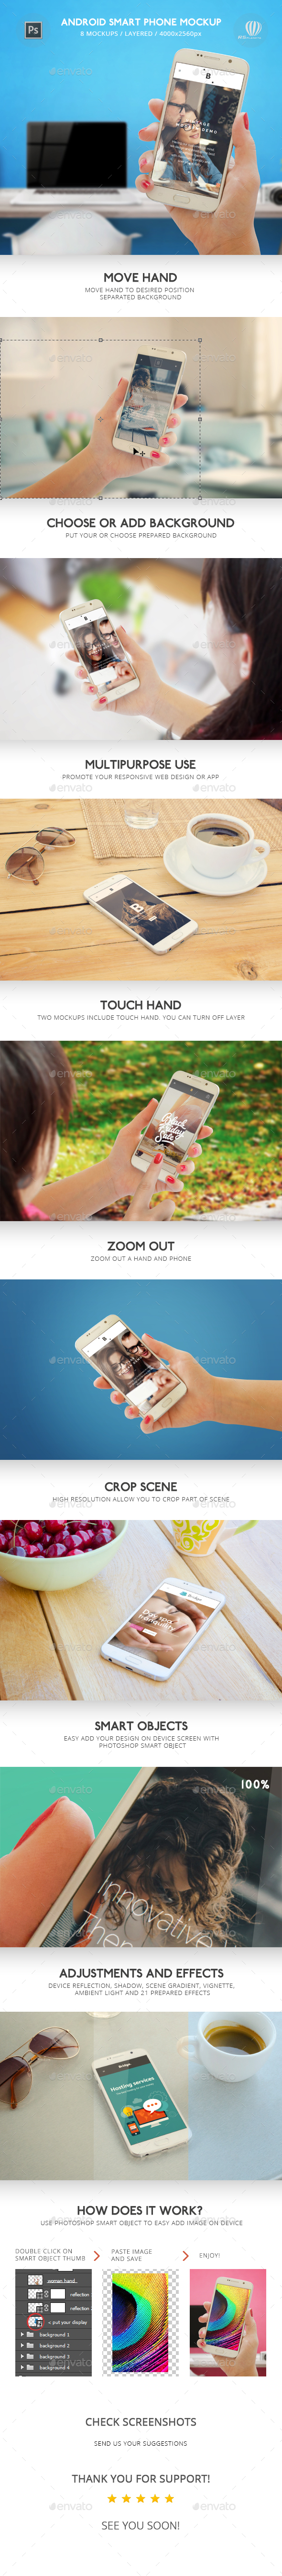 Smart Phone Mockup - Mobile Displays